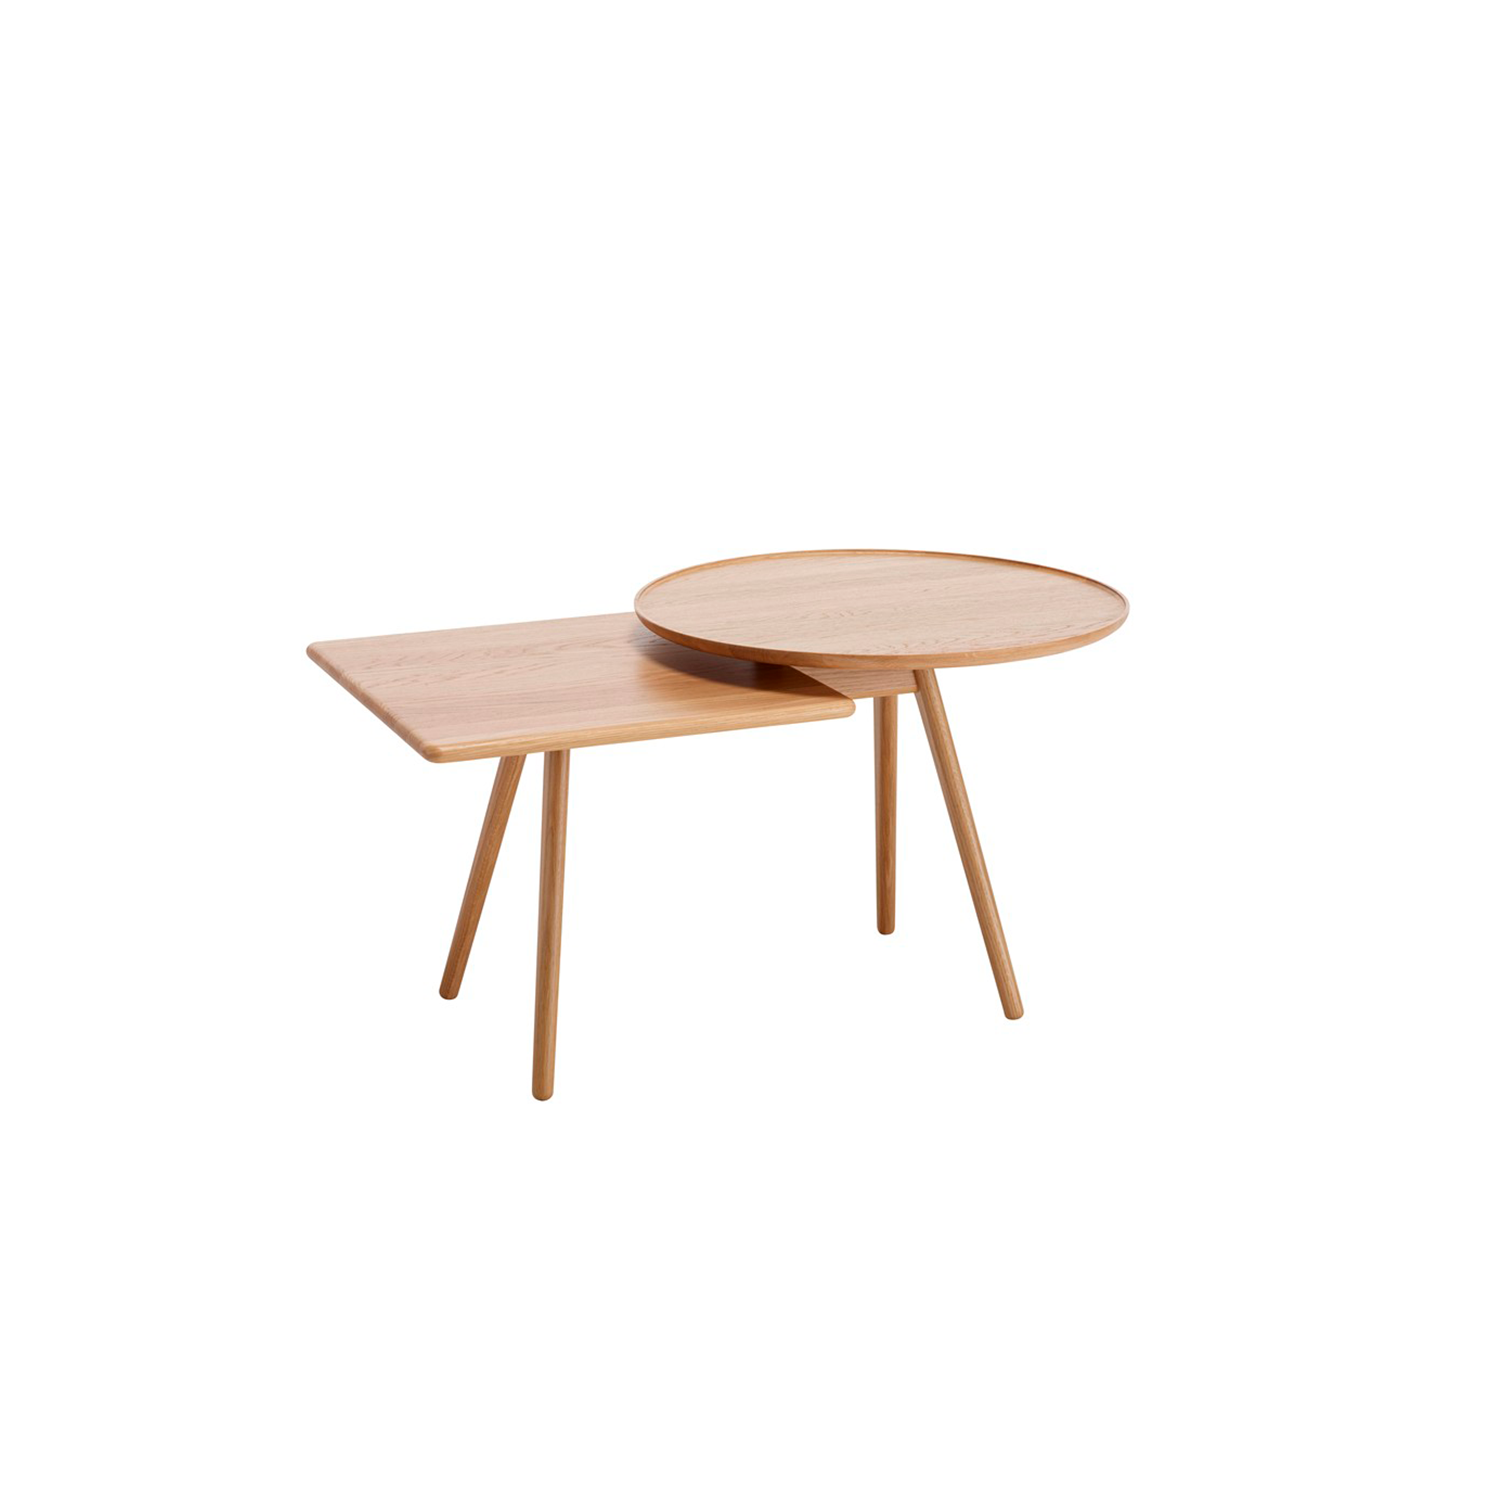 Mopsy Table - Mopsy (2016) is a sofa table with round and square-shaped tops at different heights in an overlapped combination on the same leg frame. A number of Mopsy tables can be grouped together in the same type of wood or colour, or in a combination of different types of wood and colours. The tabletops and leg frames are made from solid wood. Choose from oak, birch, ash, standard stains on ash, white glazed oak or ash and standard colors.  For standard colors the tabletop is made in MDF. Use Mopsy to furnish lobbies, all kinds of meeting places or next to your sofa at home.  Different top and leg finishes are available at an extra cost. Please enquire for more details. | Matter of Stuff